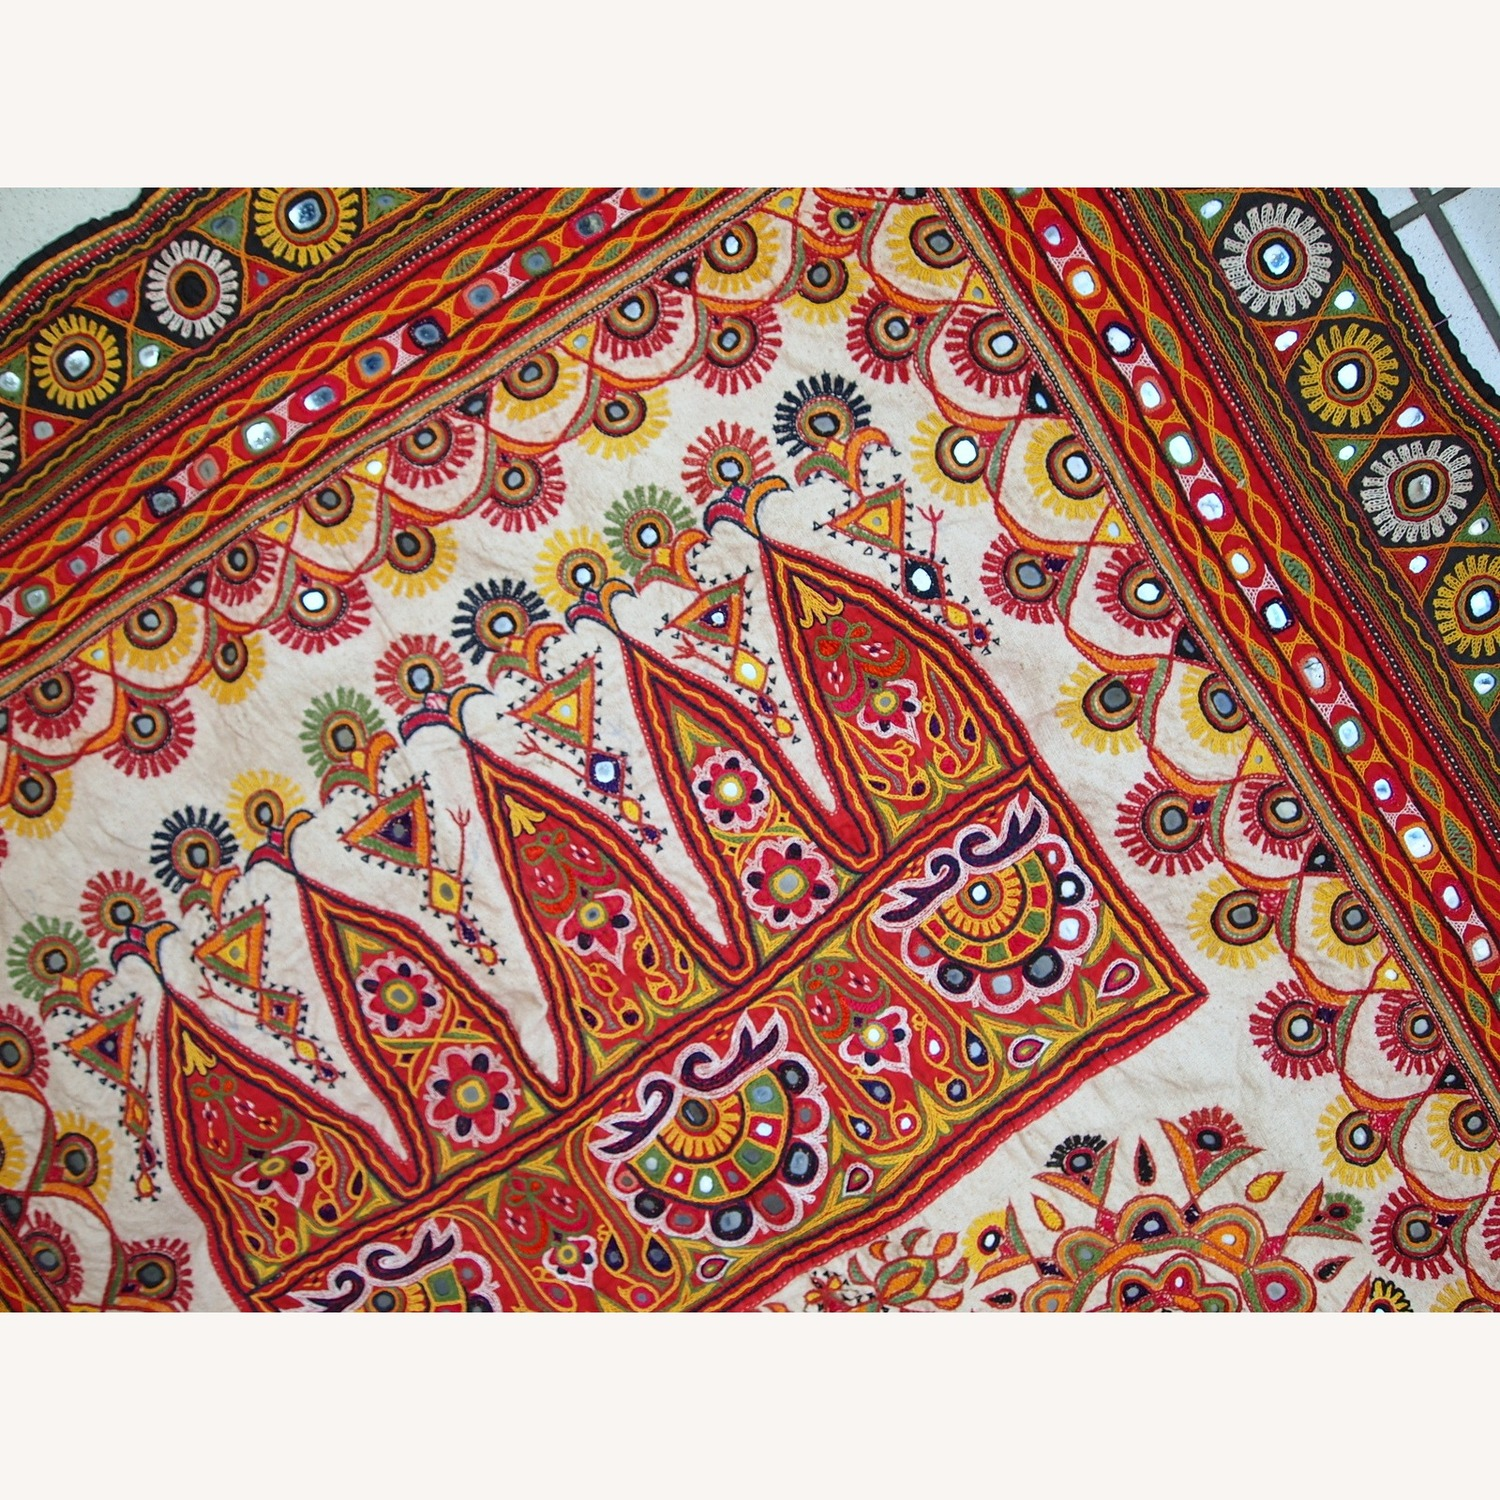 Handmade Indian Wall Hanging Embroidered Tapestry - image-7